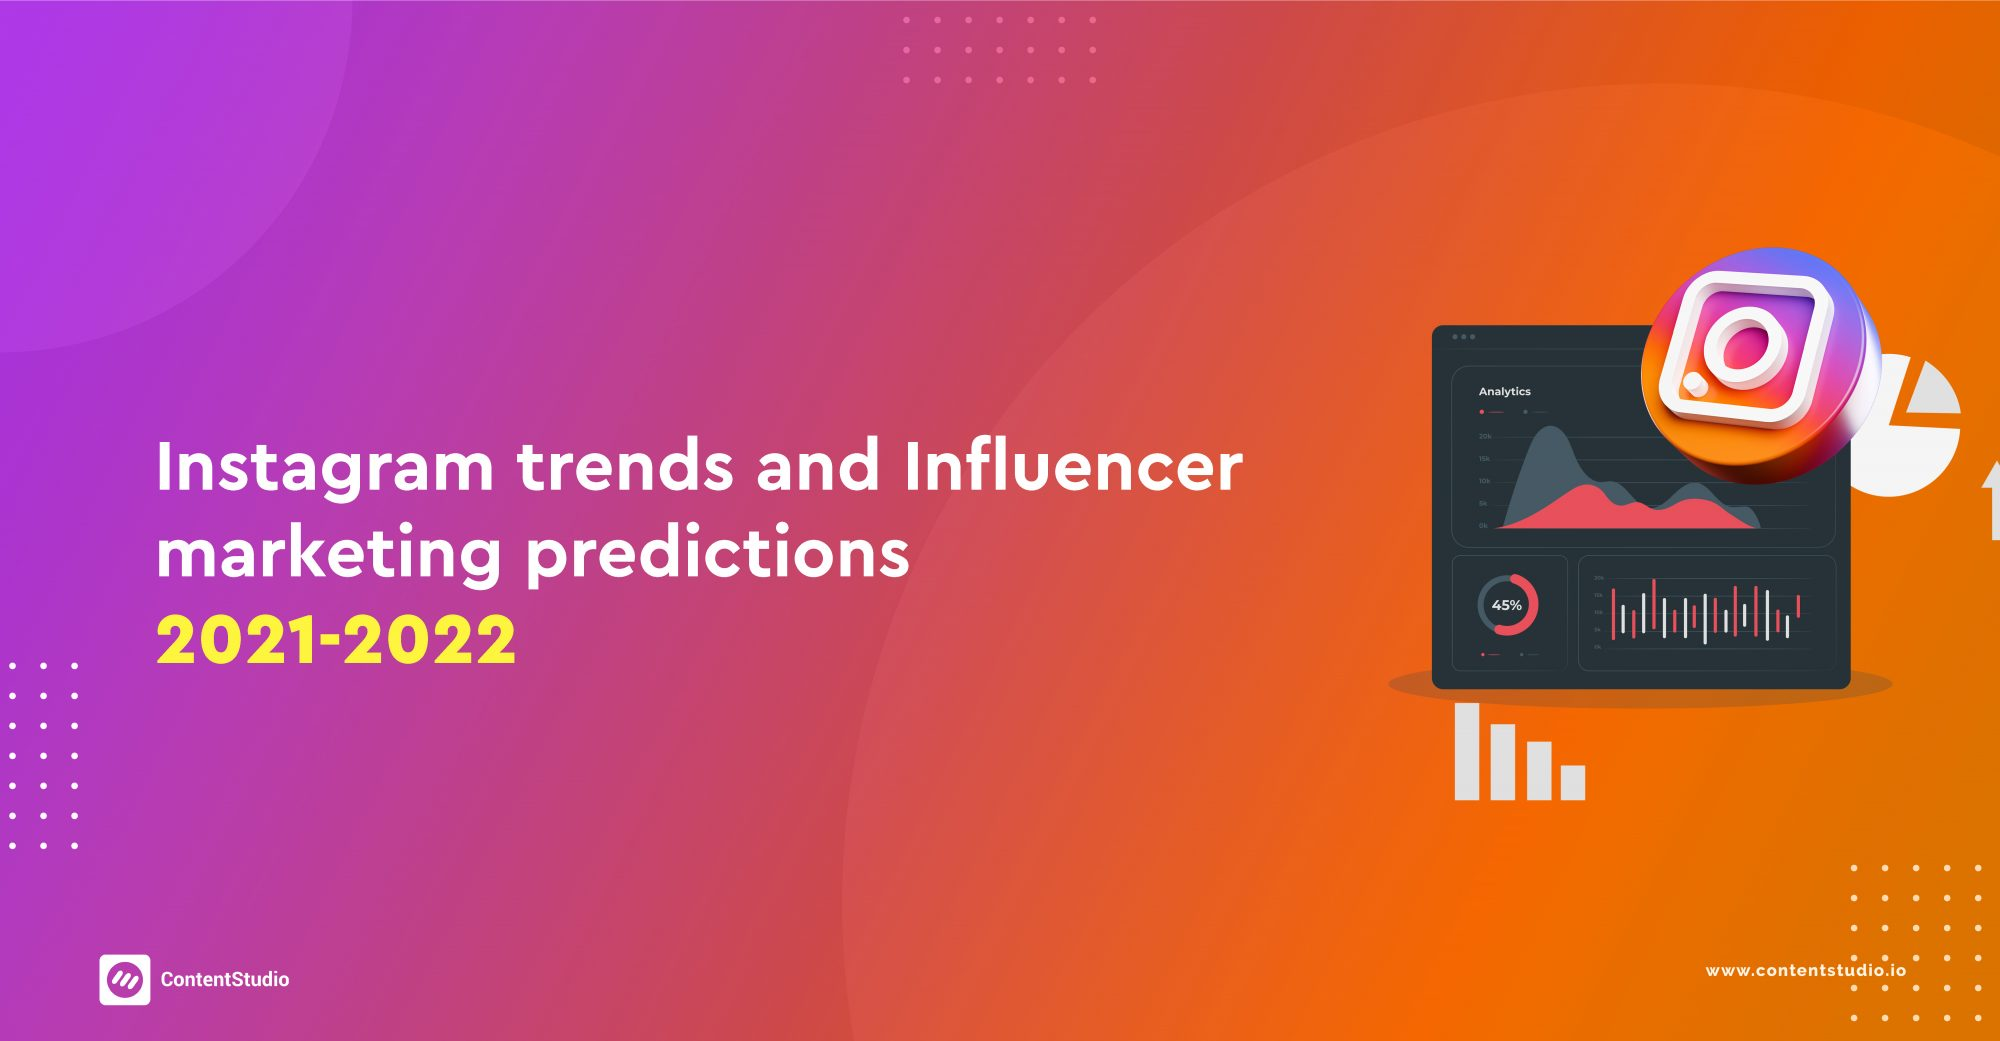 Instagram trends and Influencer marketing predictions 2021-22